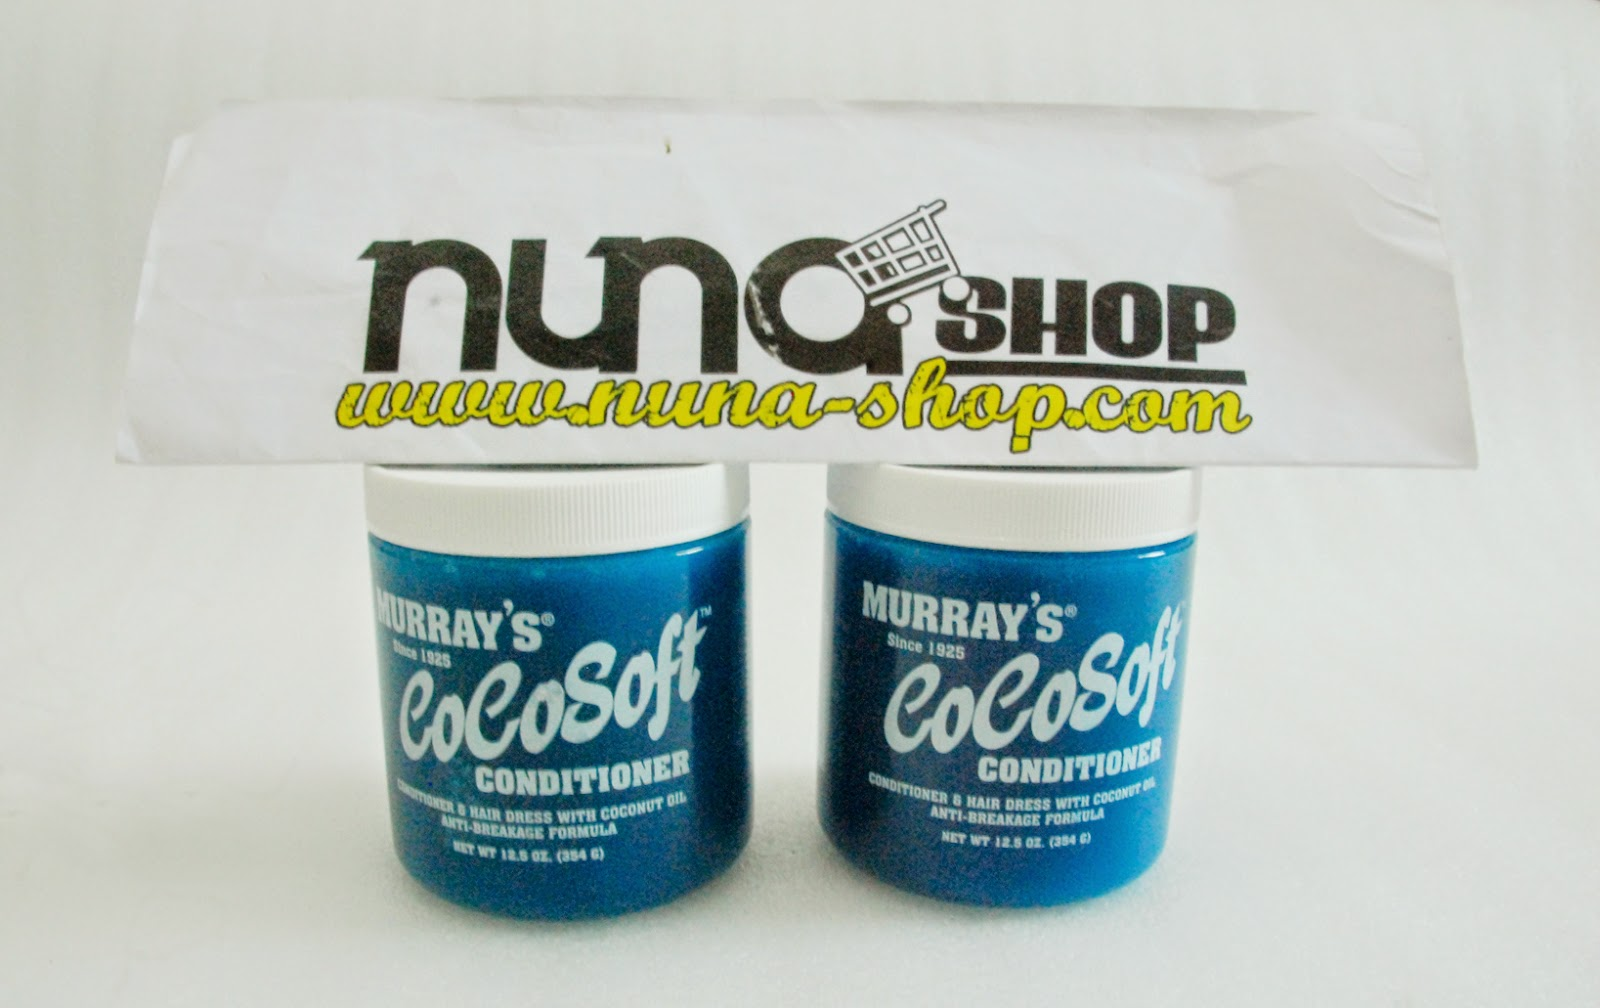 Murray's Cocosoft Conditioner & Hair Dress with Coconut Oil